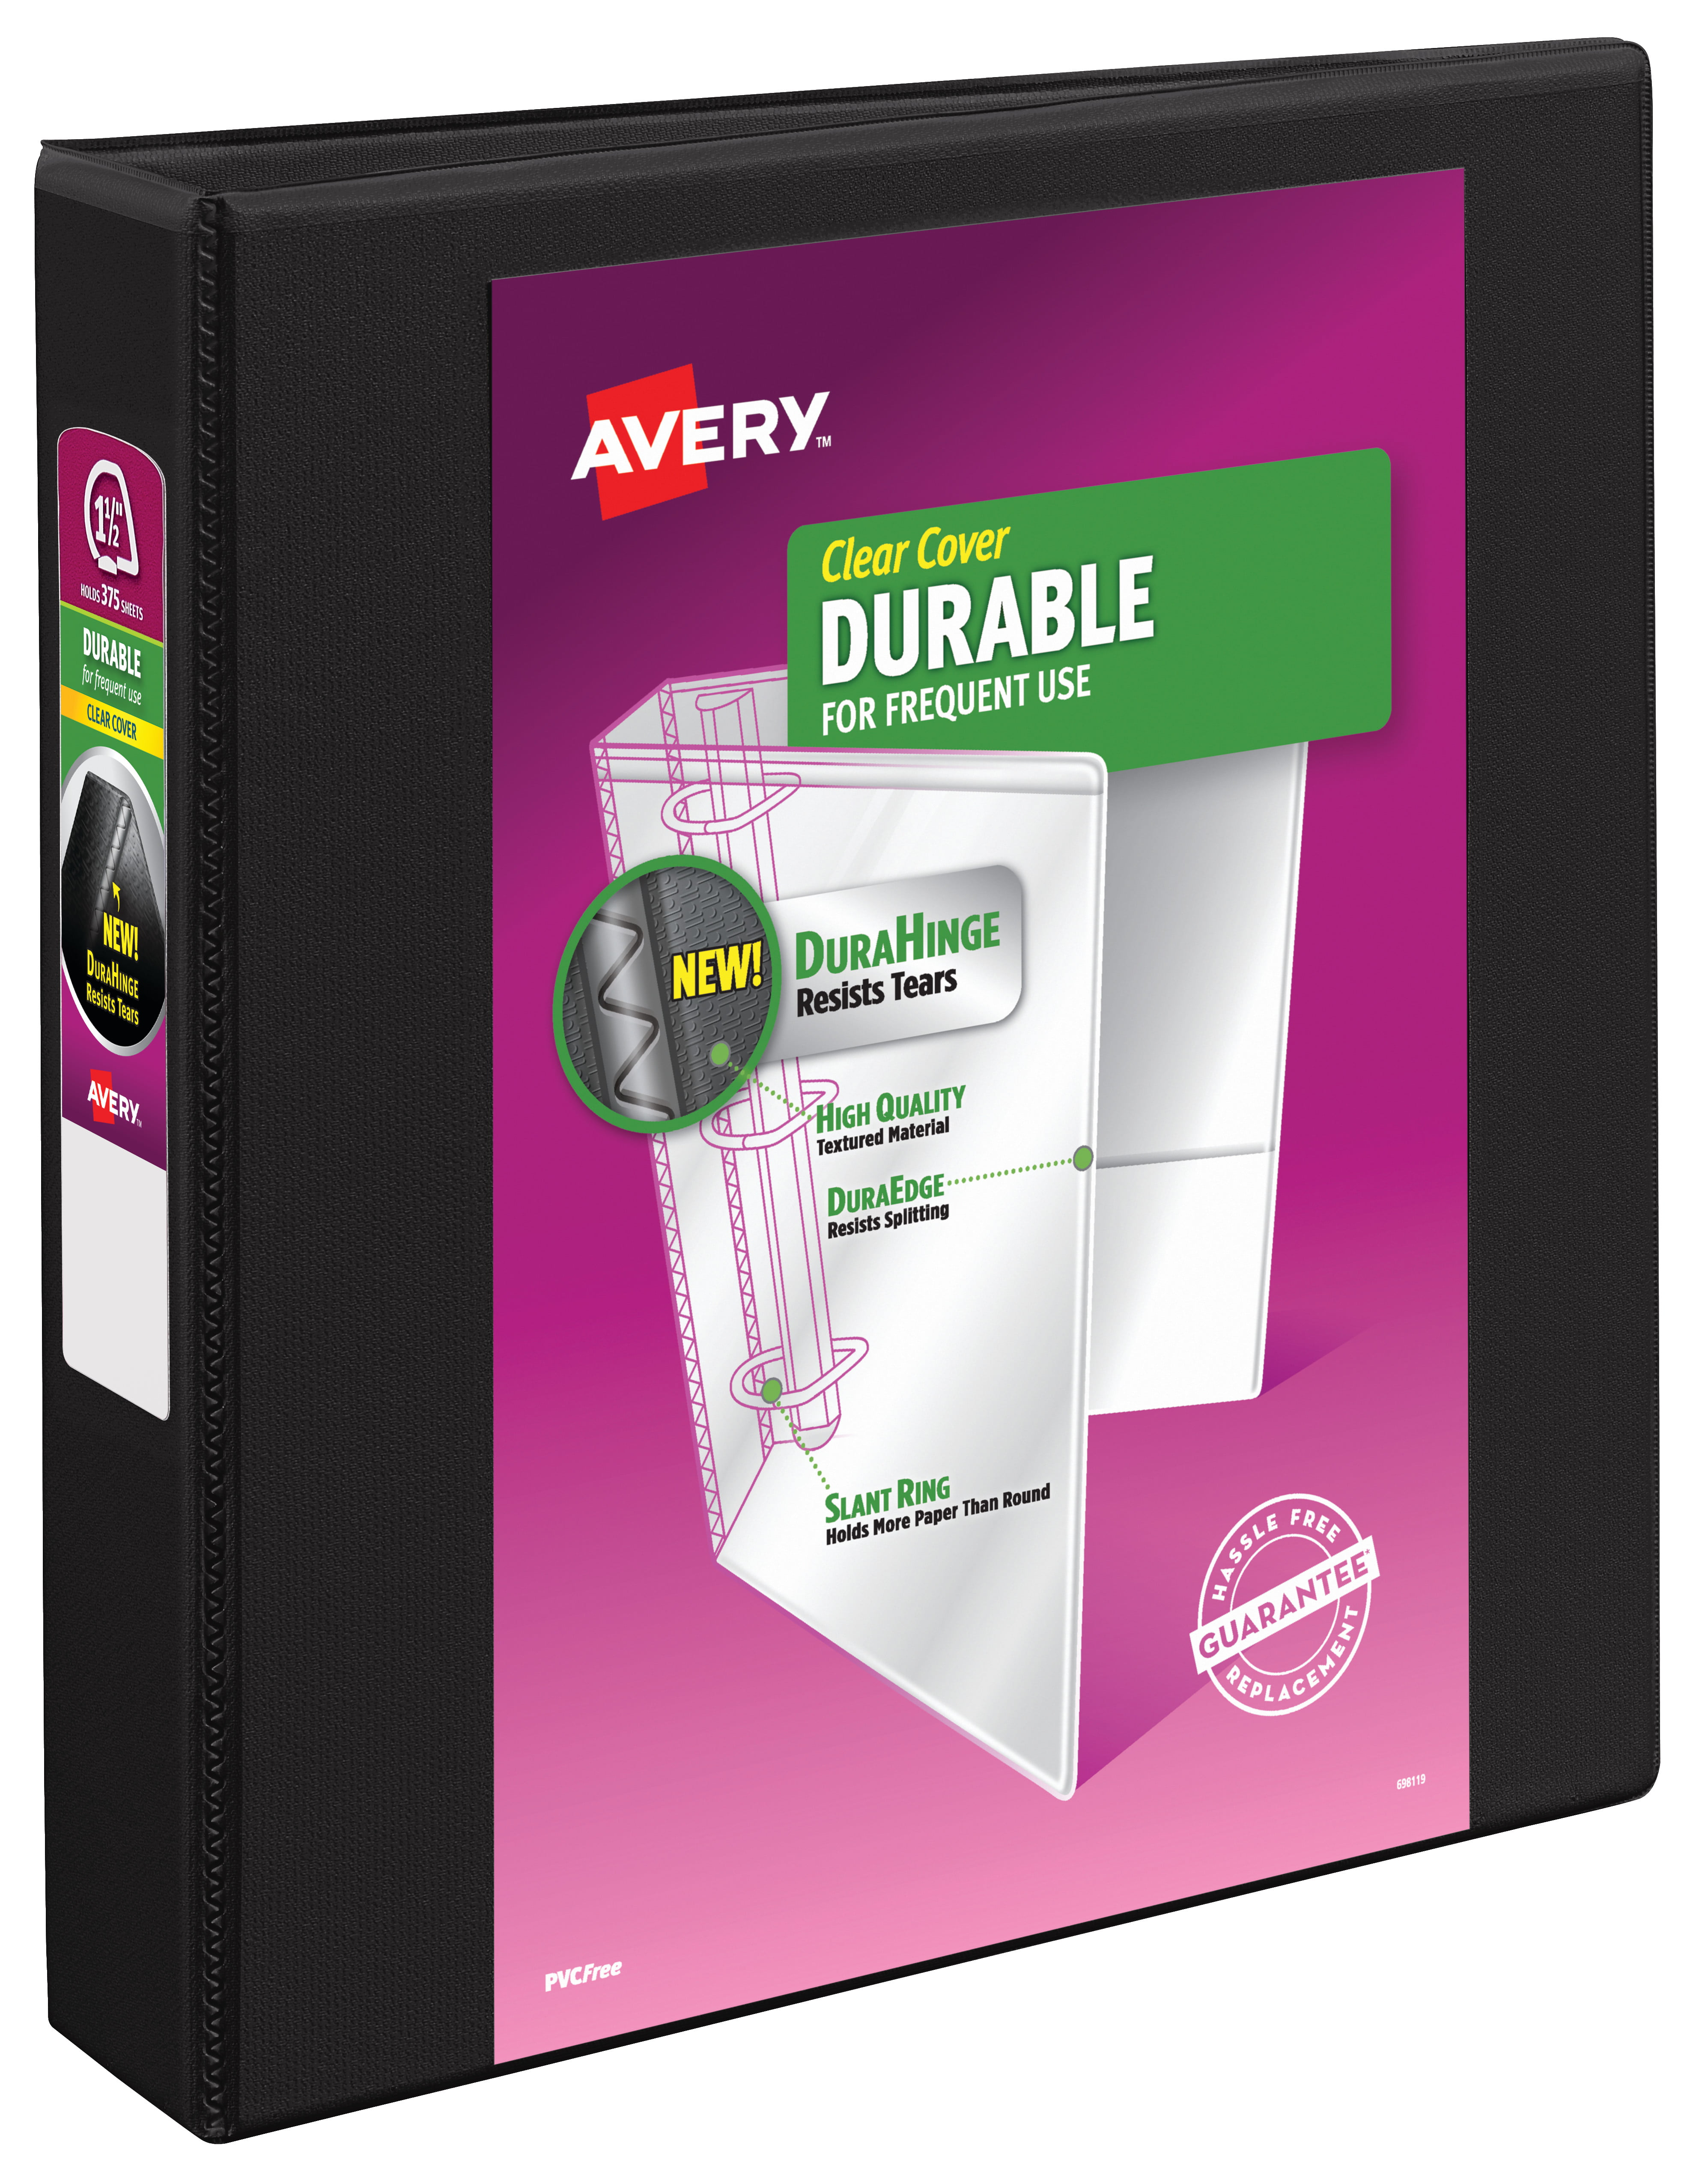 """Avery 1-1 2"""" Durable View Binder, Slant Ring, Black, 375 SHeets by Avery Products Corporation"""